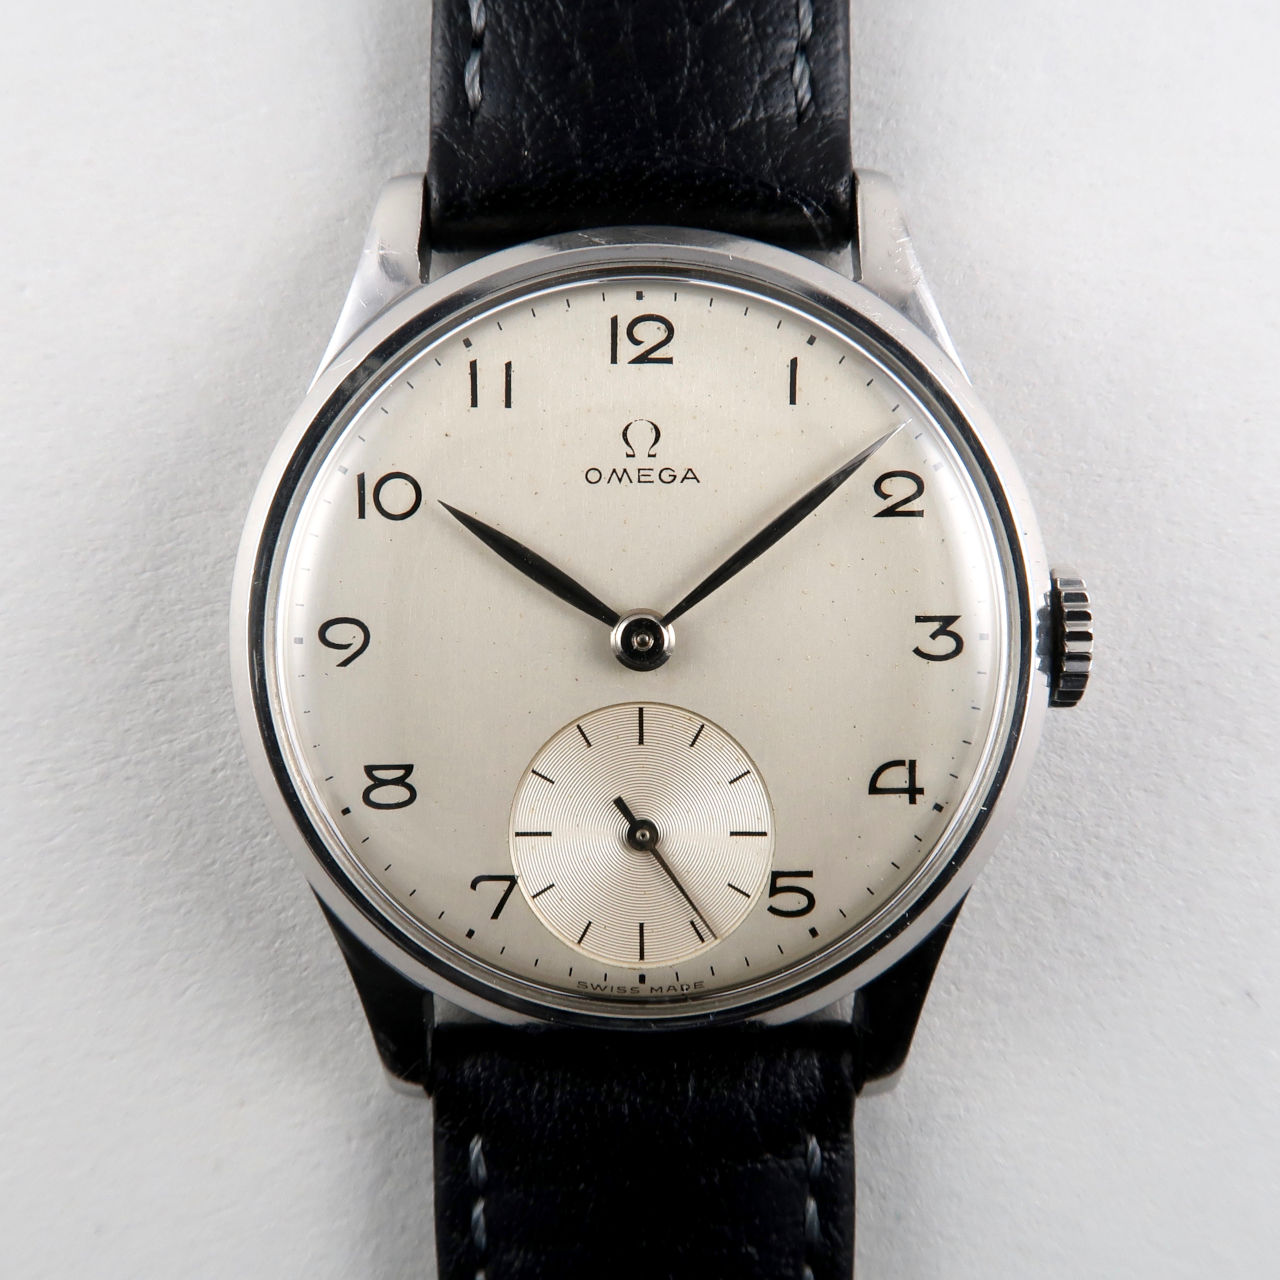 Omega Ref. 720 circa 1950 | steel manual vintage wristwatch